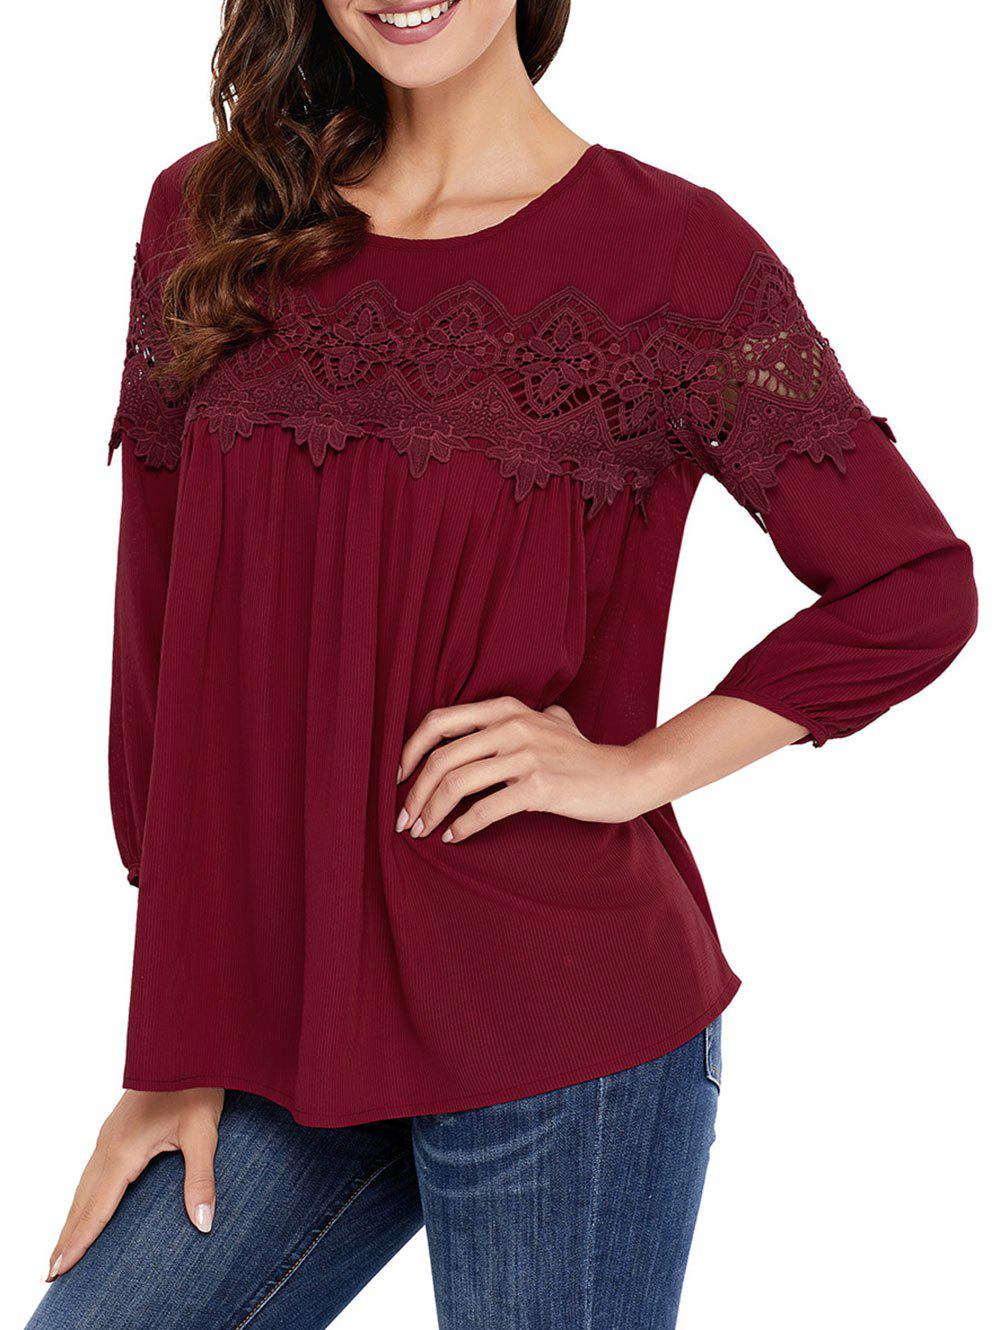 Crochet Lace Insert High Low Blouse - WINE RED 2XL